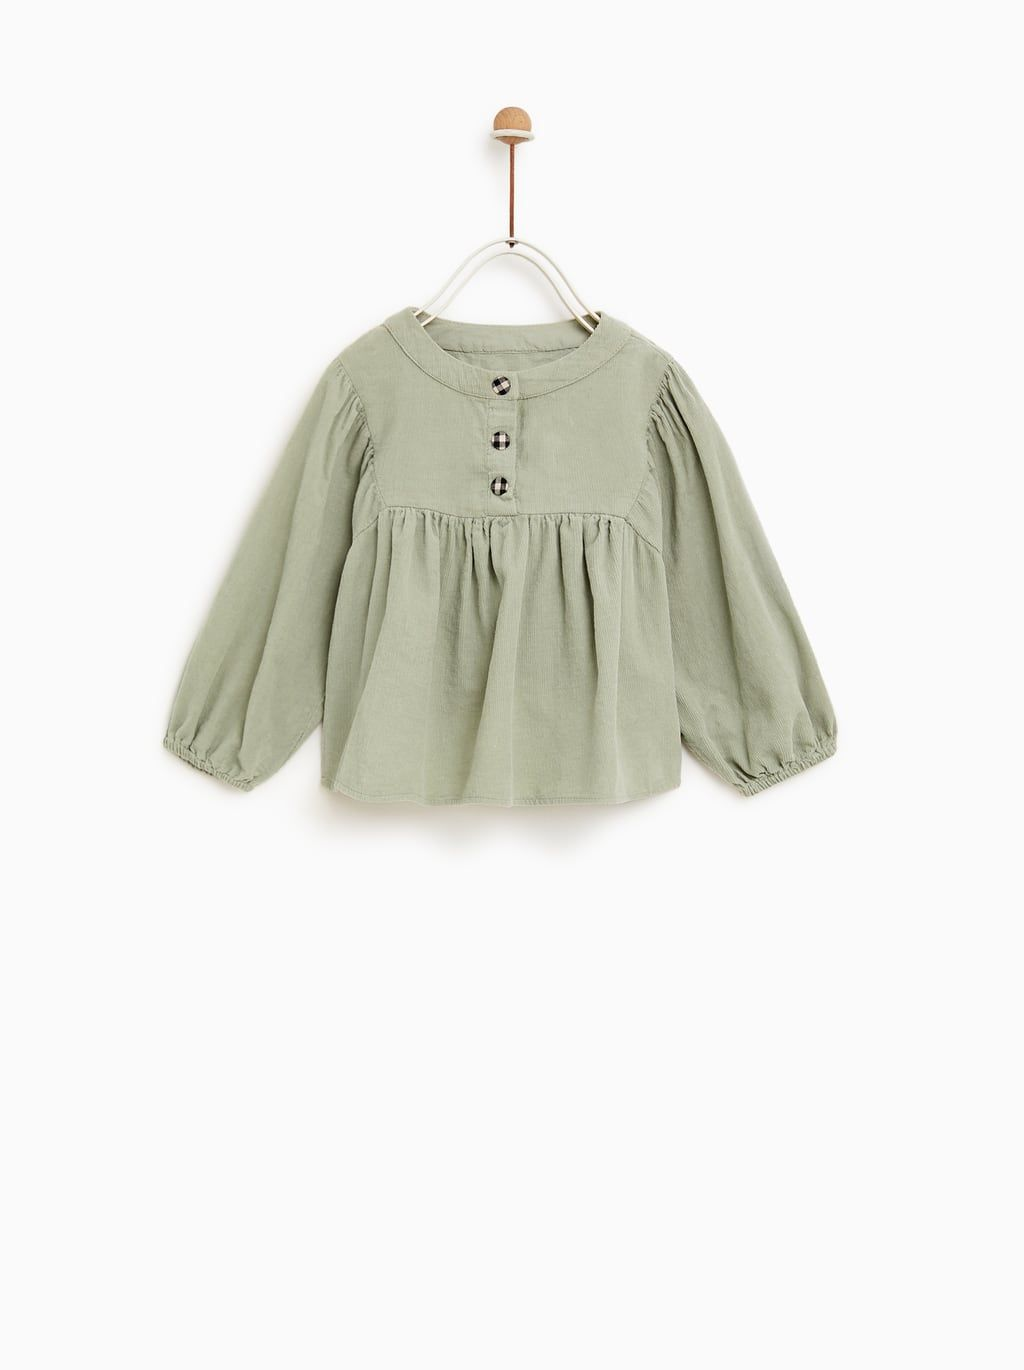 Fine Corduroy Shirt Girl Outfits Kids Outfits Cute Girl Outfits